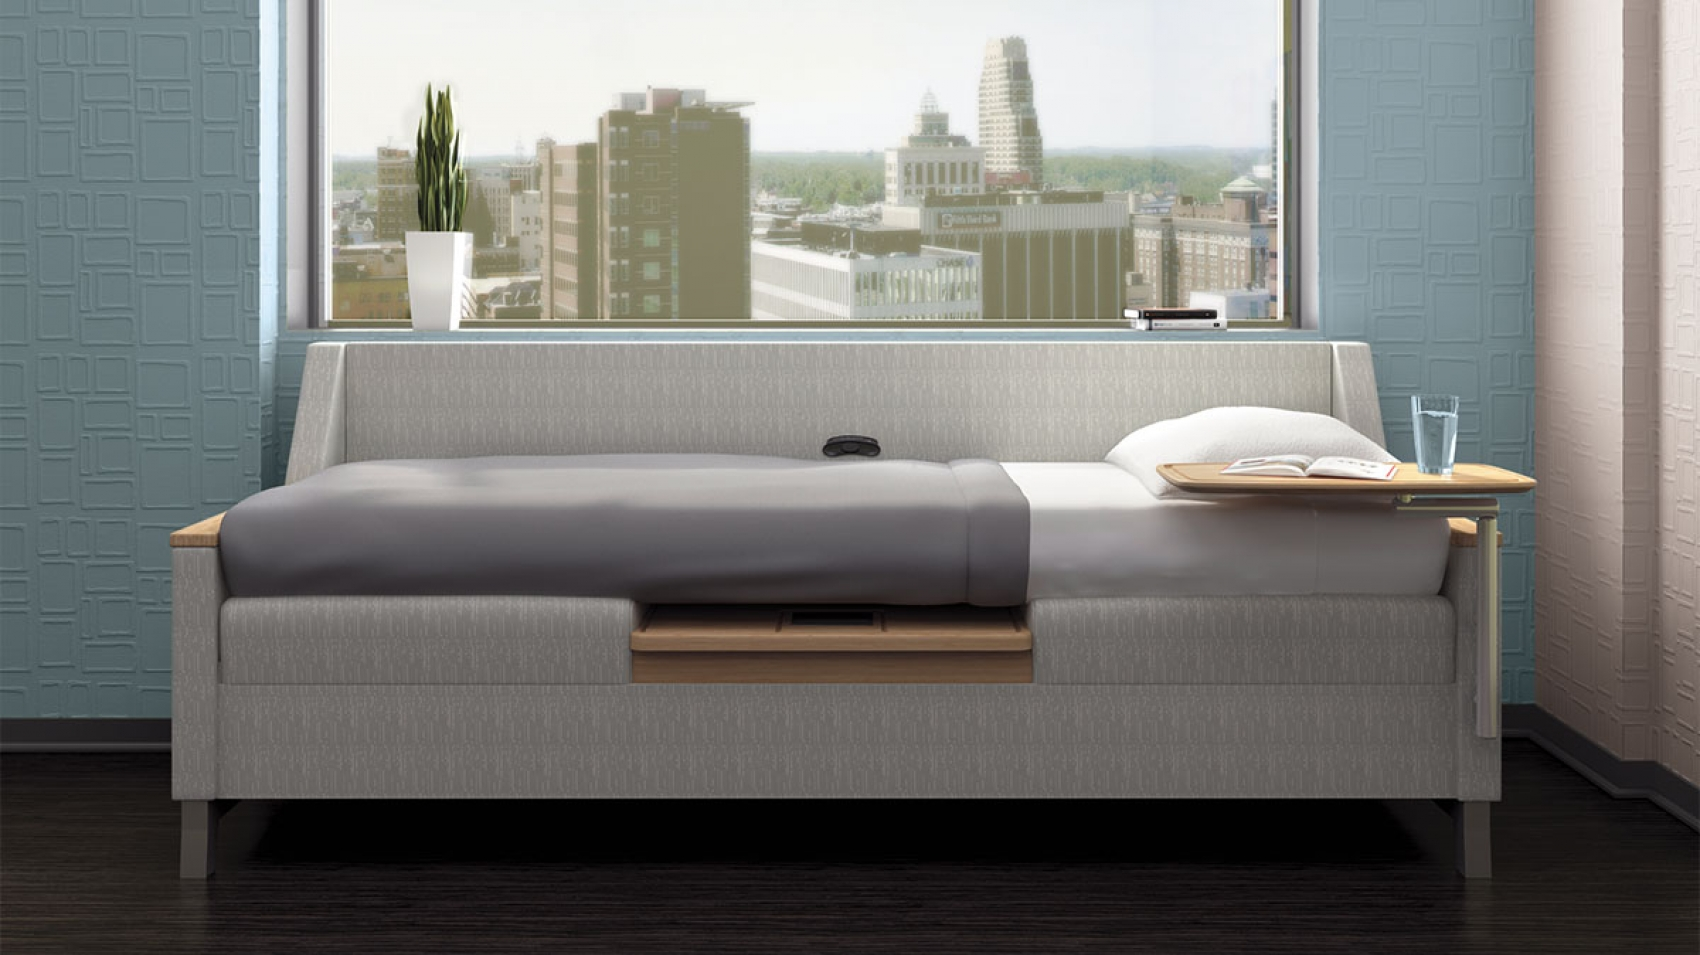 Genial Reverie Is A Sleepover Sofa For Healthcare Spaces That Offers Supreme Form  And Function. Thoughtfully Designed With Multiple Arm Styles, ...